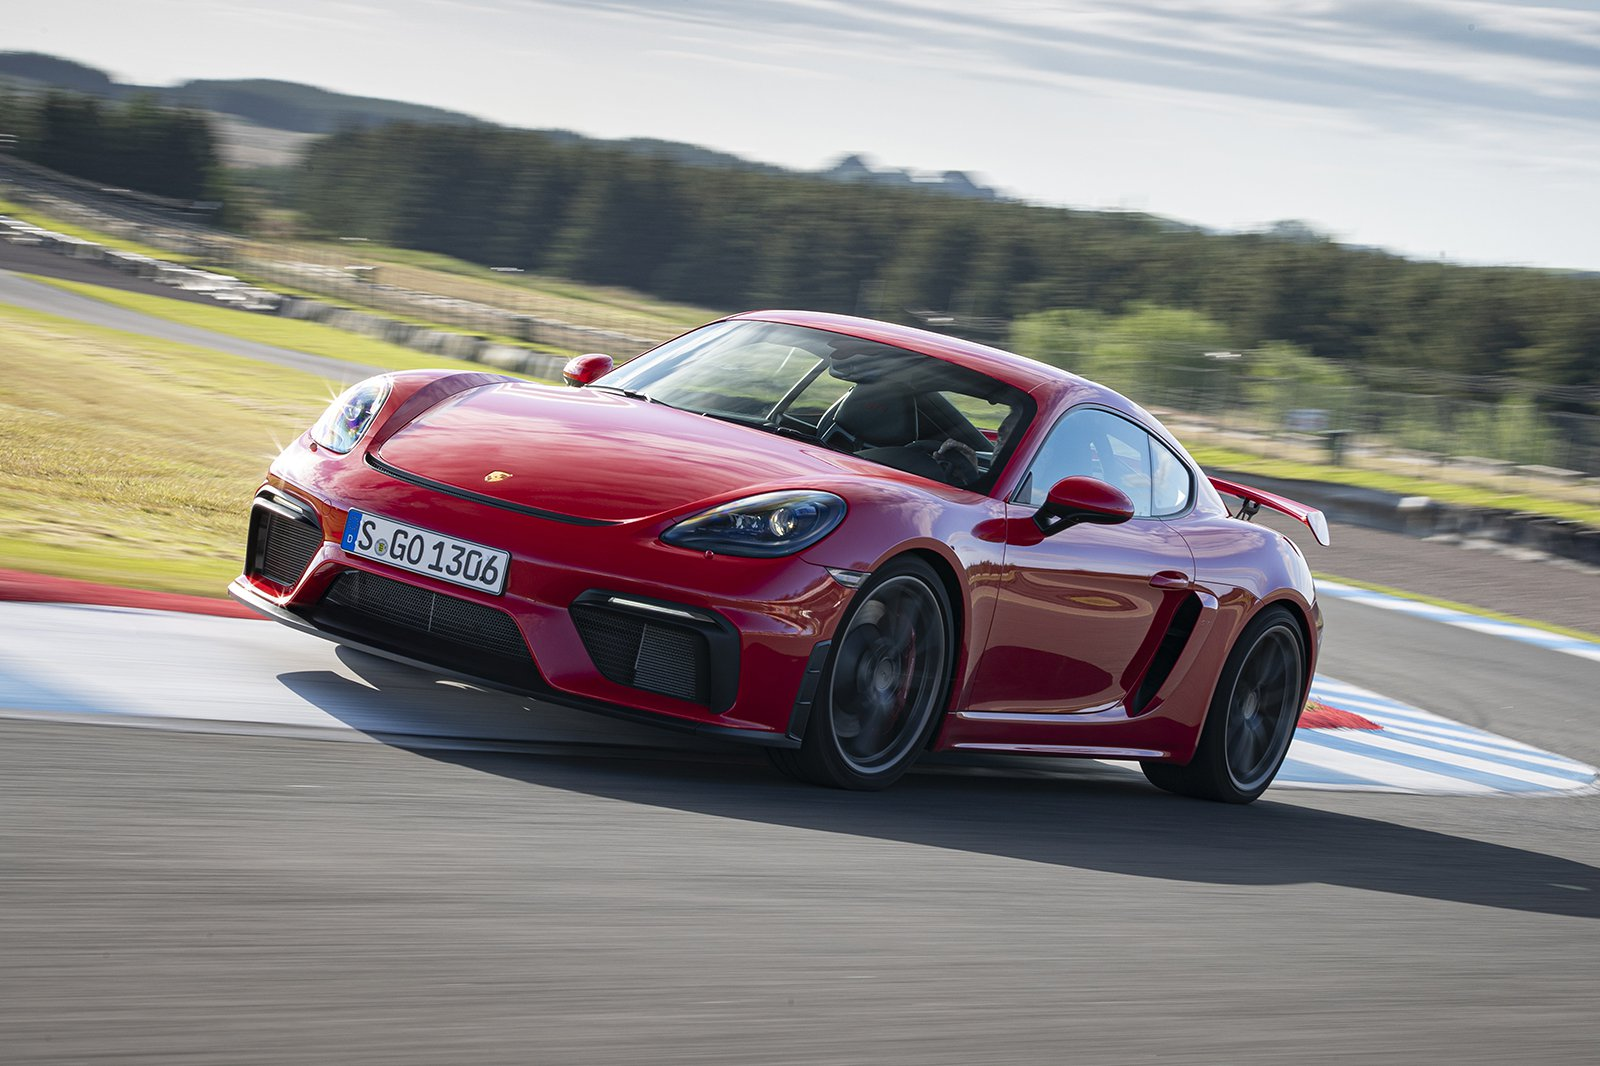 2019 Porsche 718 Cayman GT4 verdict | What Car?